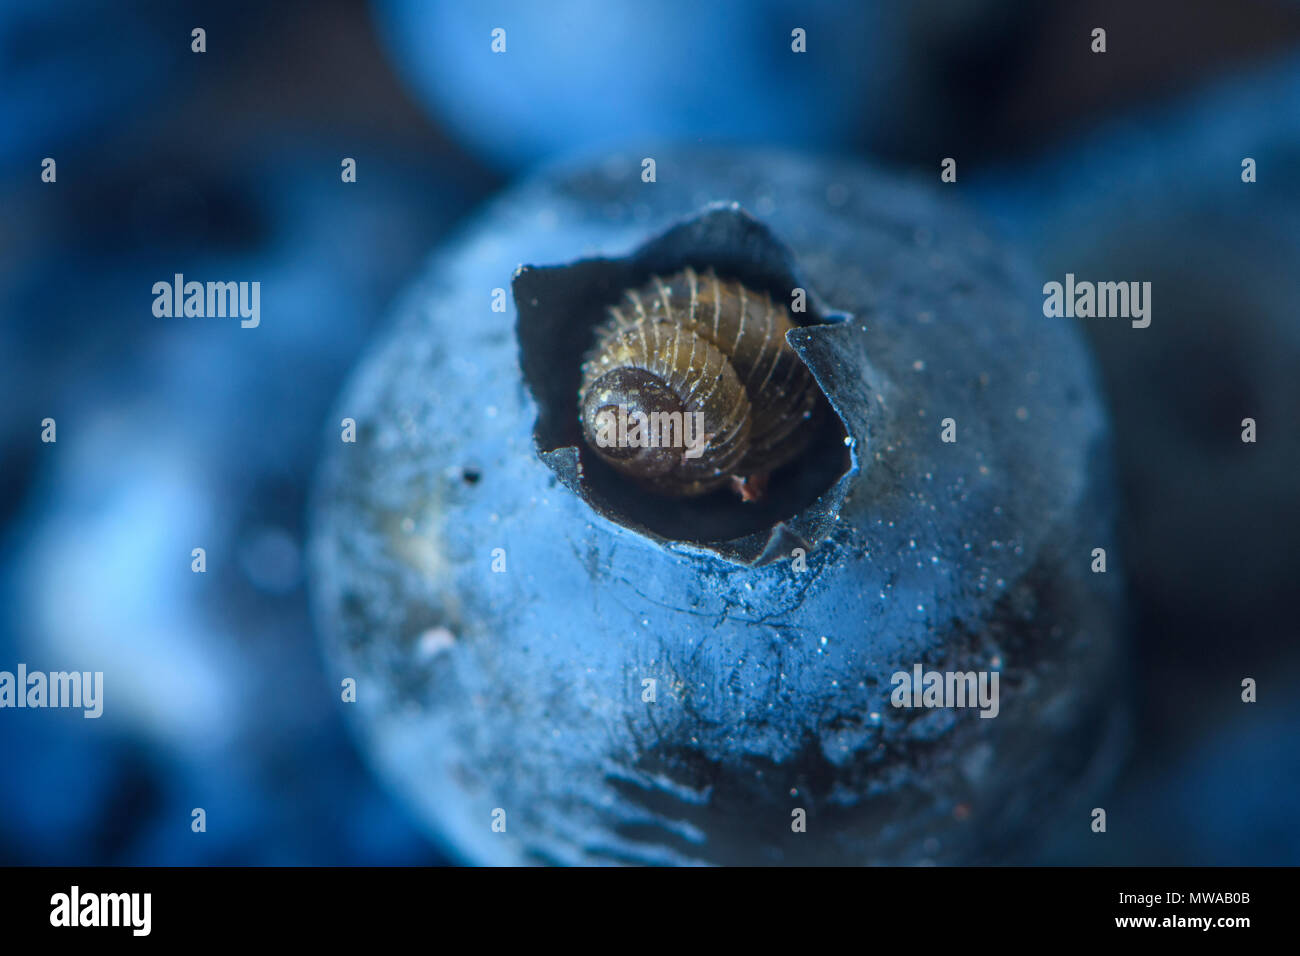 Boreal Top snail (Zoogenetes harpa) resting in the tip of a blueberry, Dowling, Ontario, Canada - Stock Image